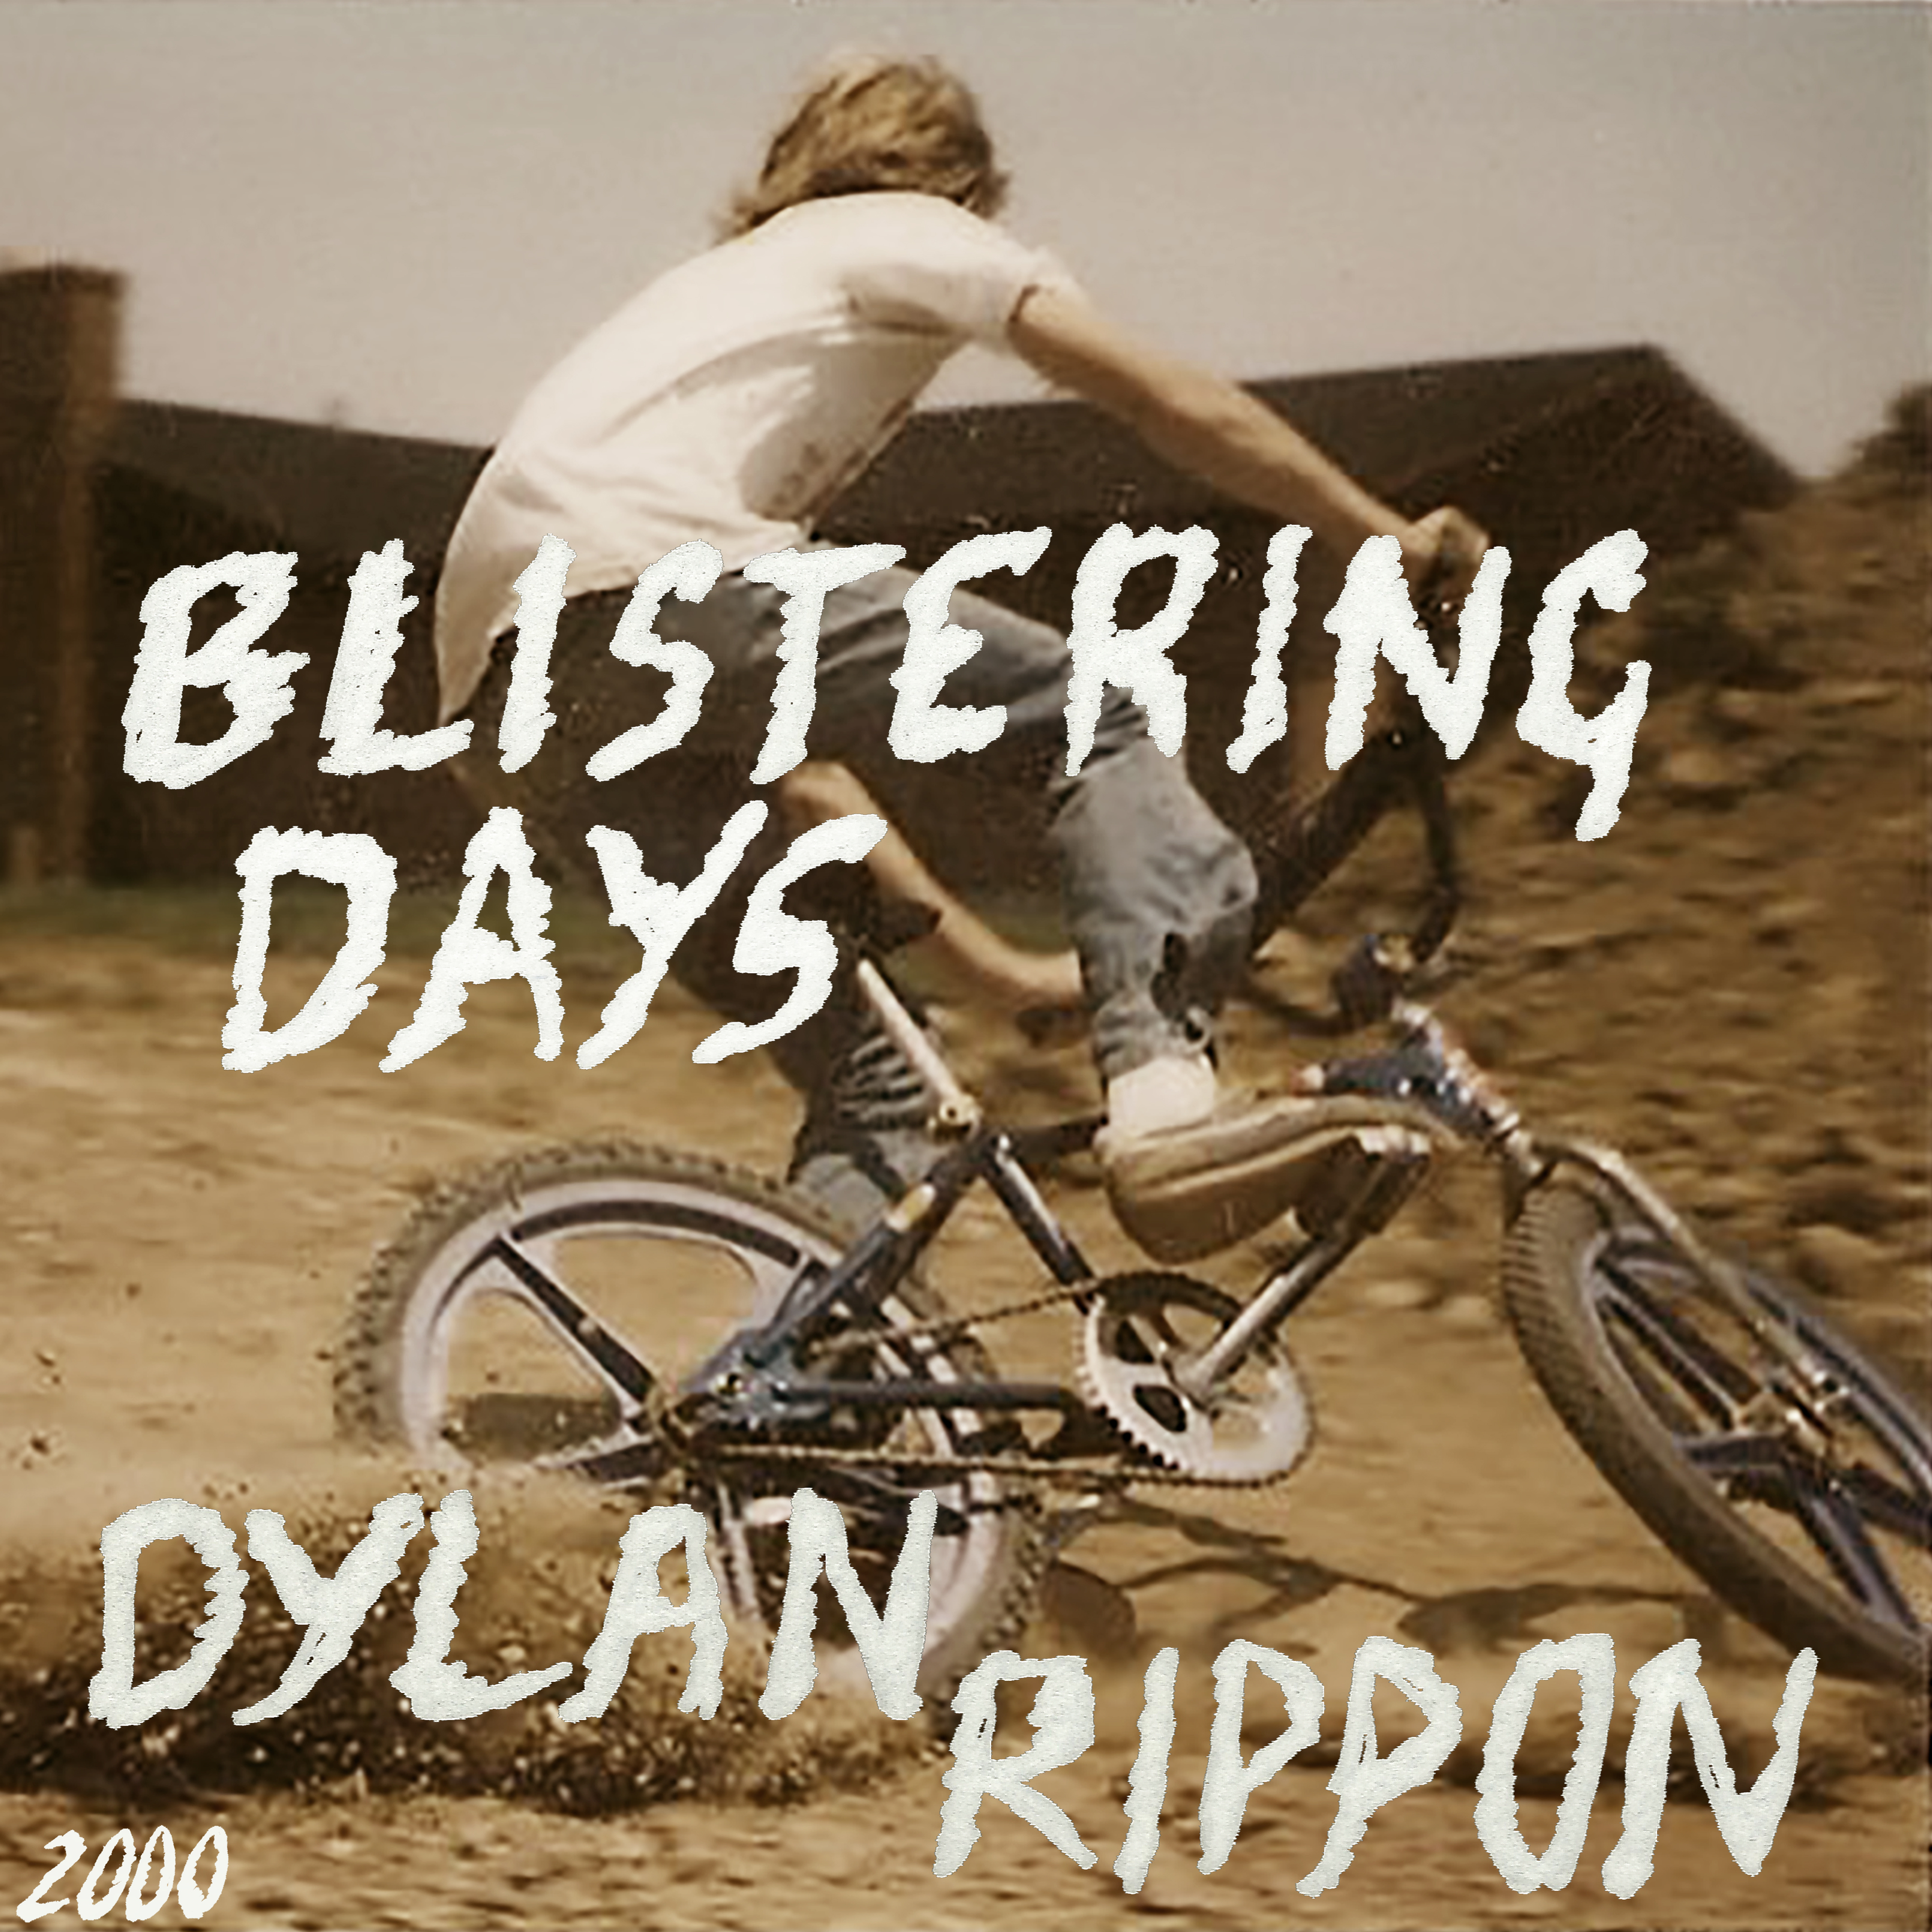 Dylan Rippon - Blistering Days